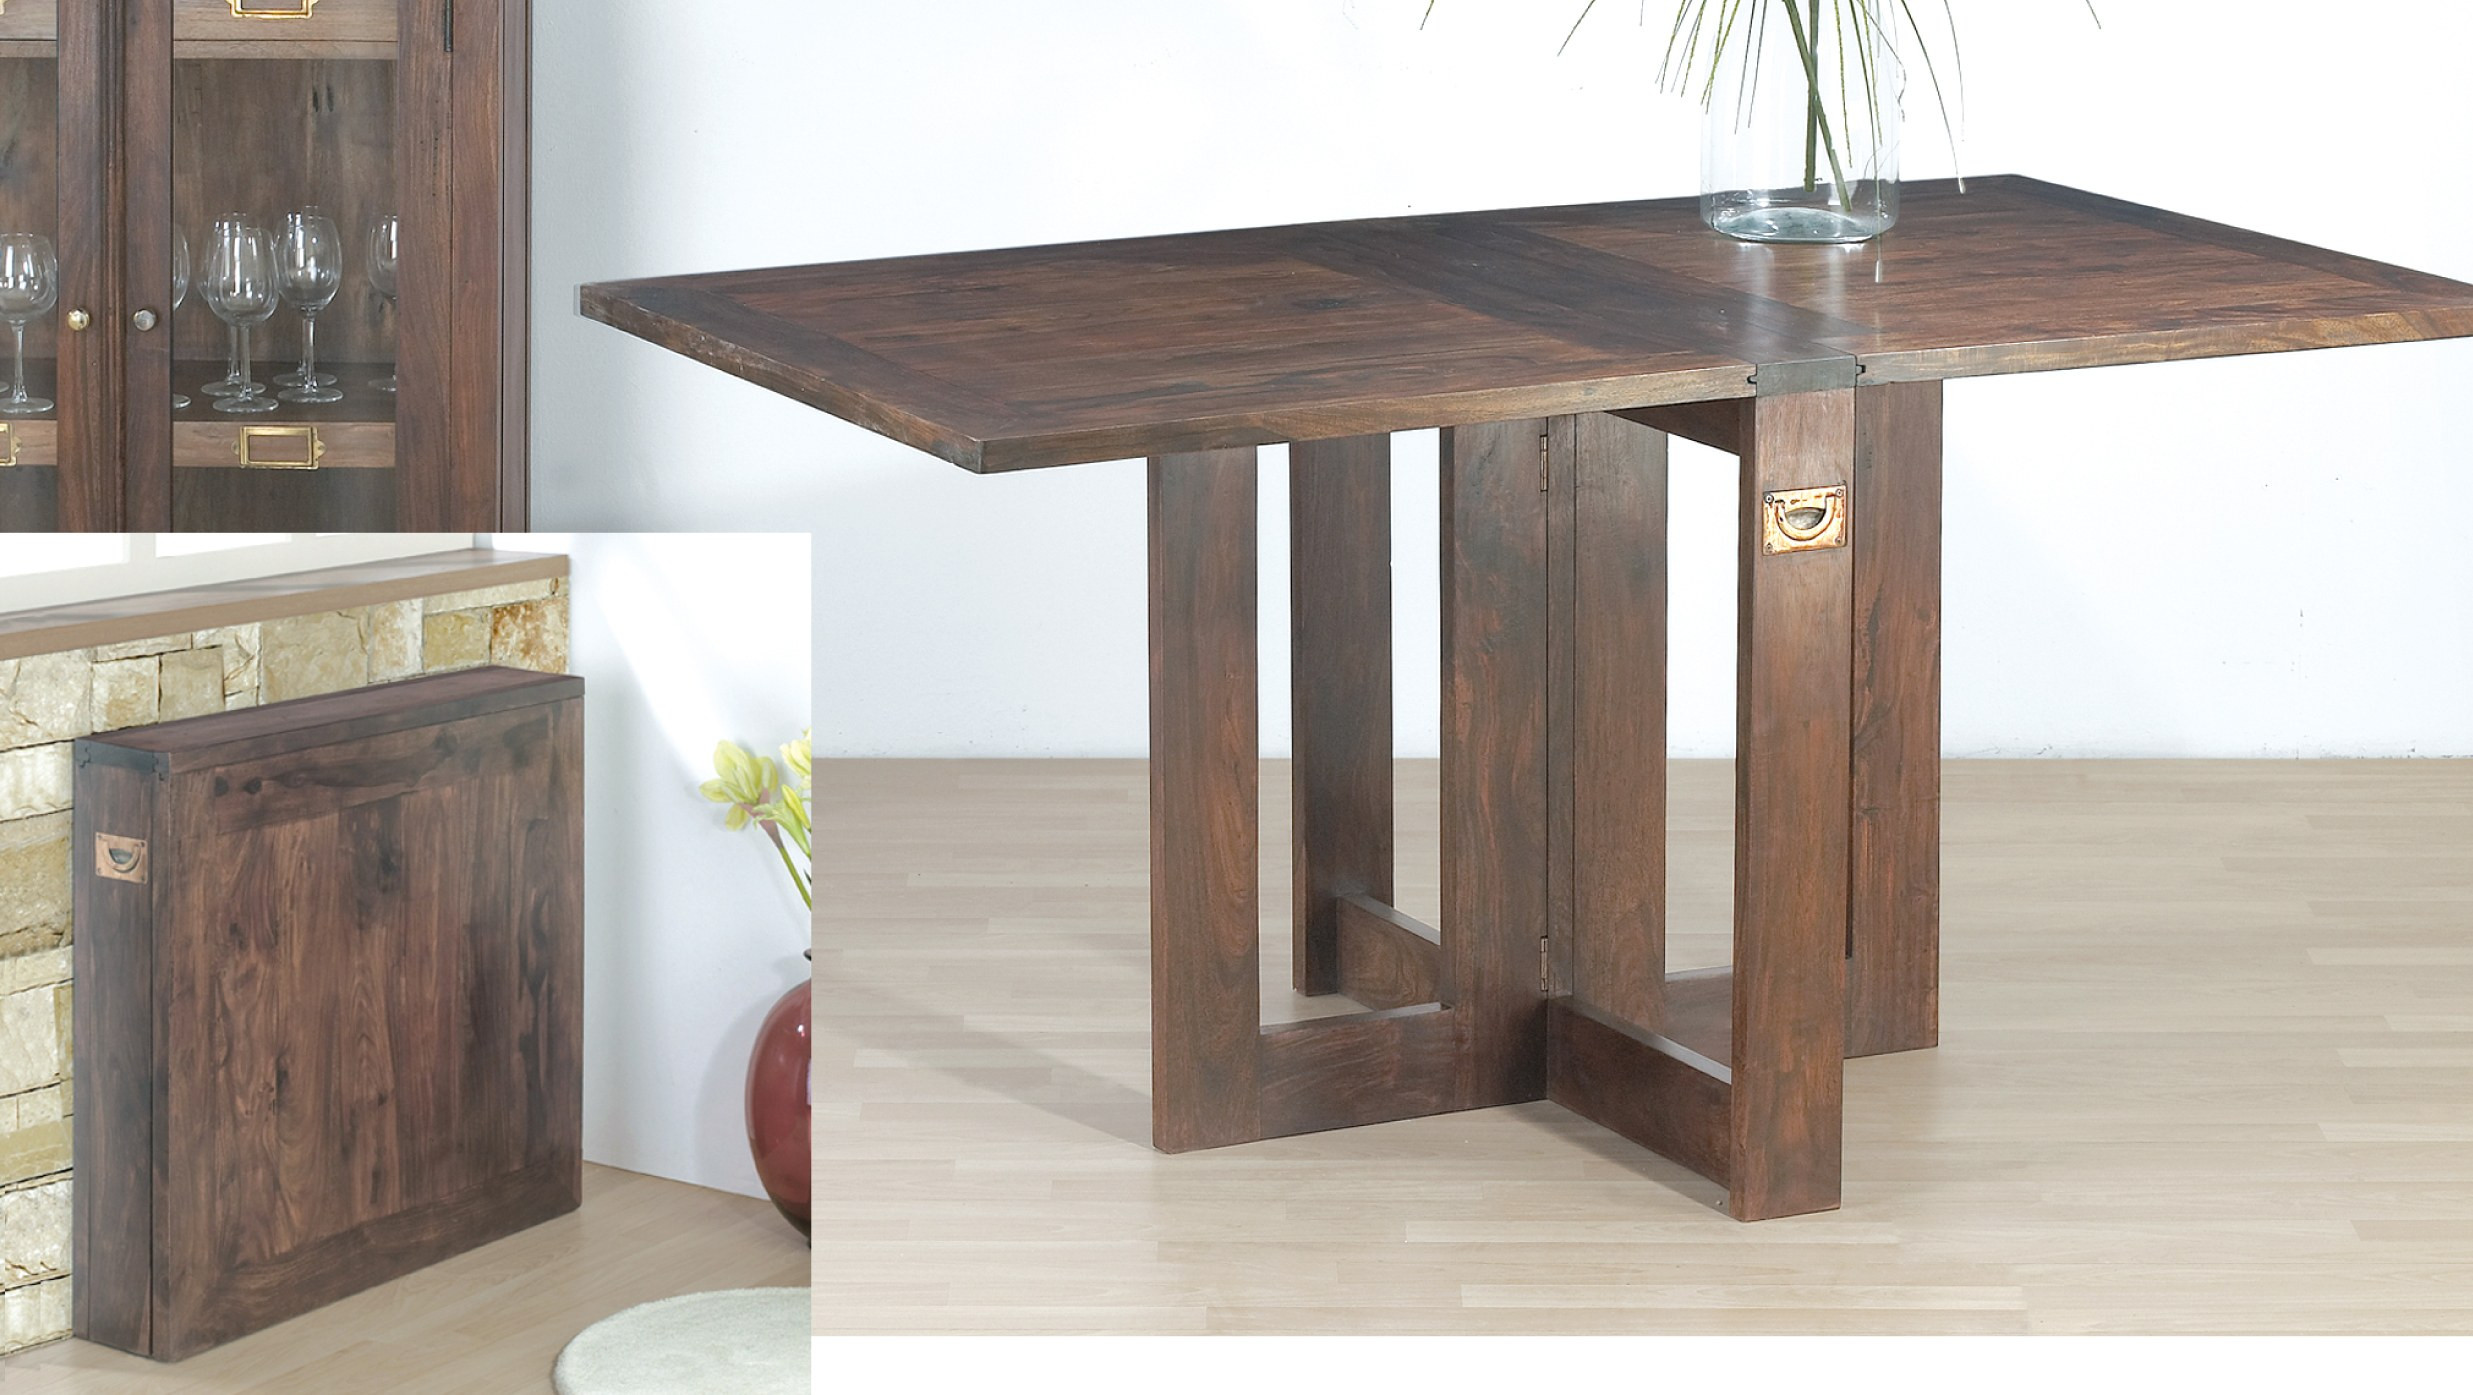 Best ideas about Foldable Dining Table . Save or Pin Folding Dining Table line Shopping Now.